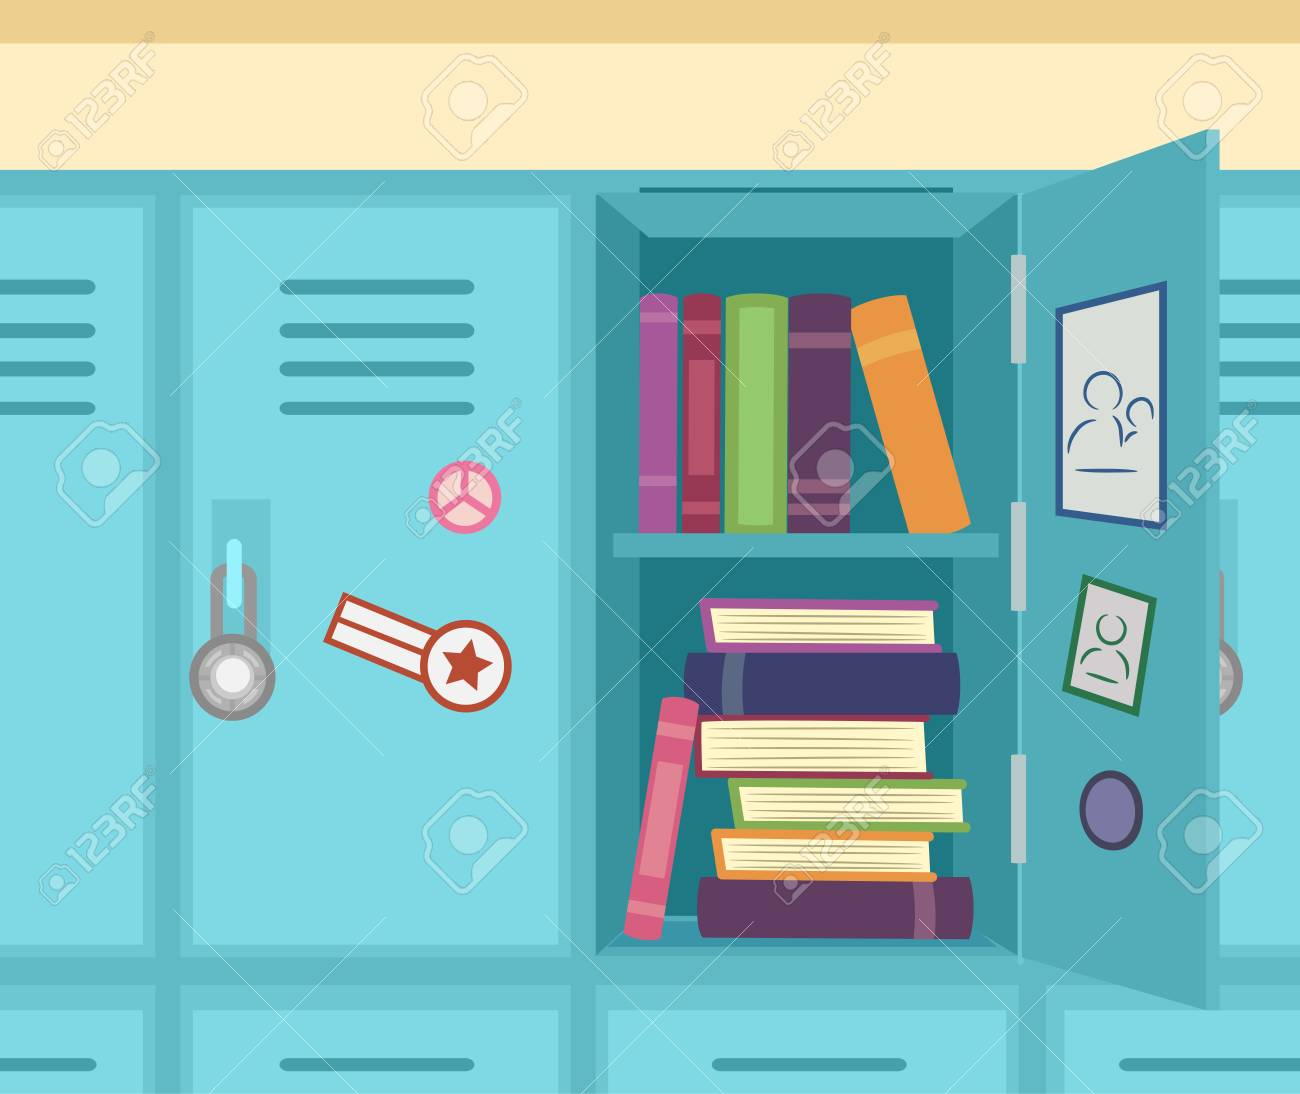 hight resolution of colorful illustration featuring an open school locker showing stacks of books stock illustration 83242354